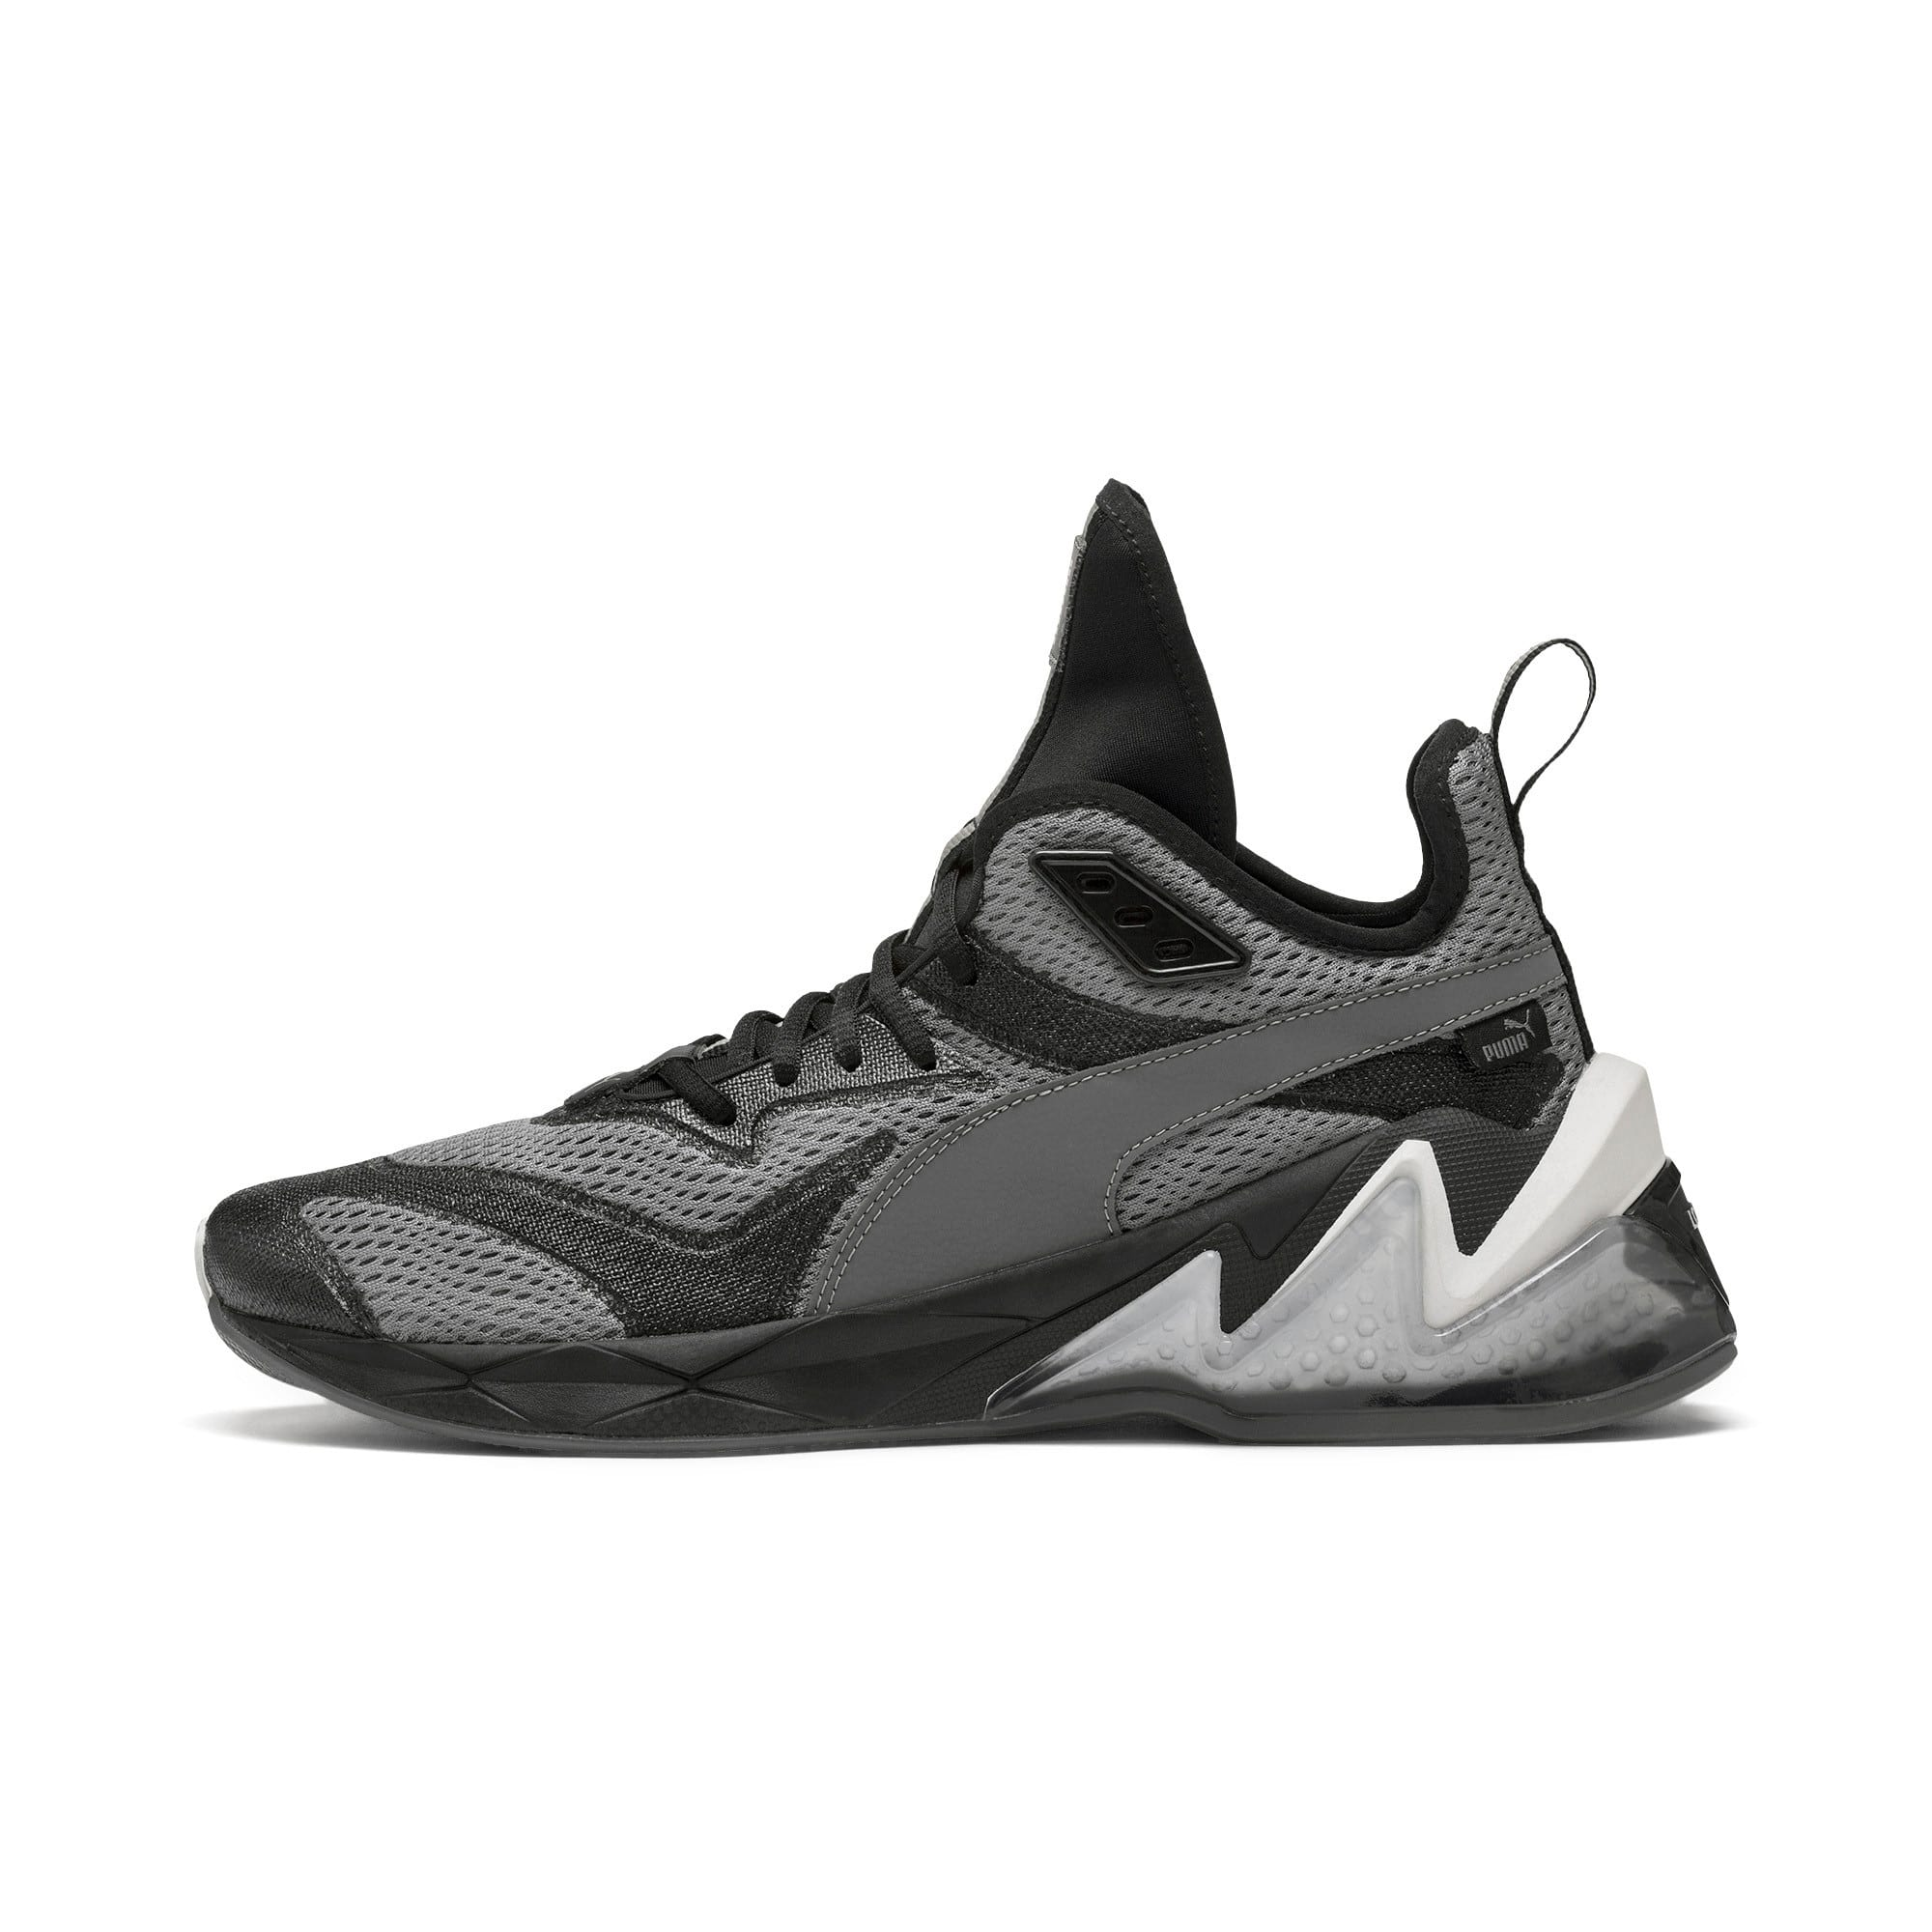 Thumbnail 1 of LQDCELL Origin Tech Herren Trainingsschuhe, Puma Black-CASTLEROCK, medium